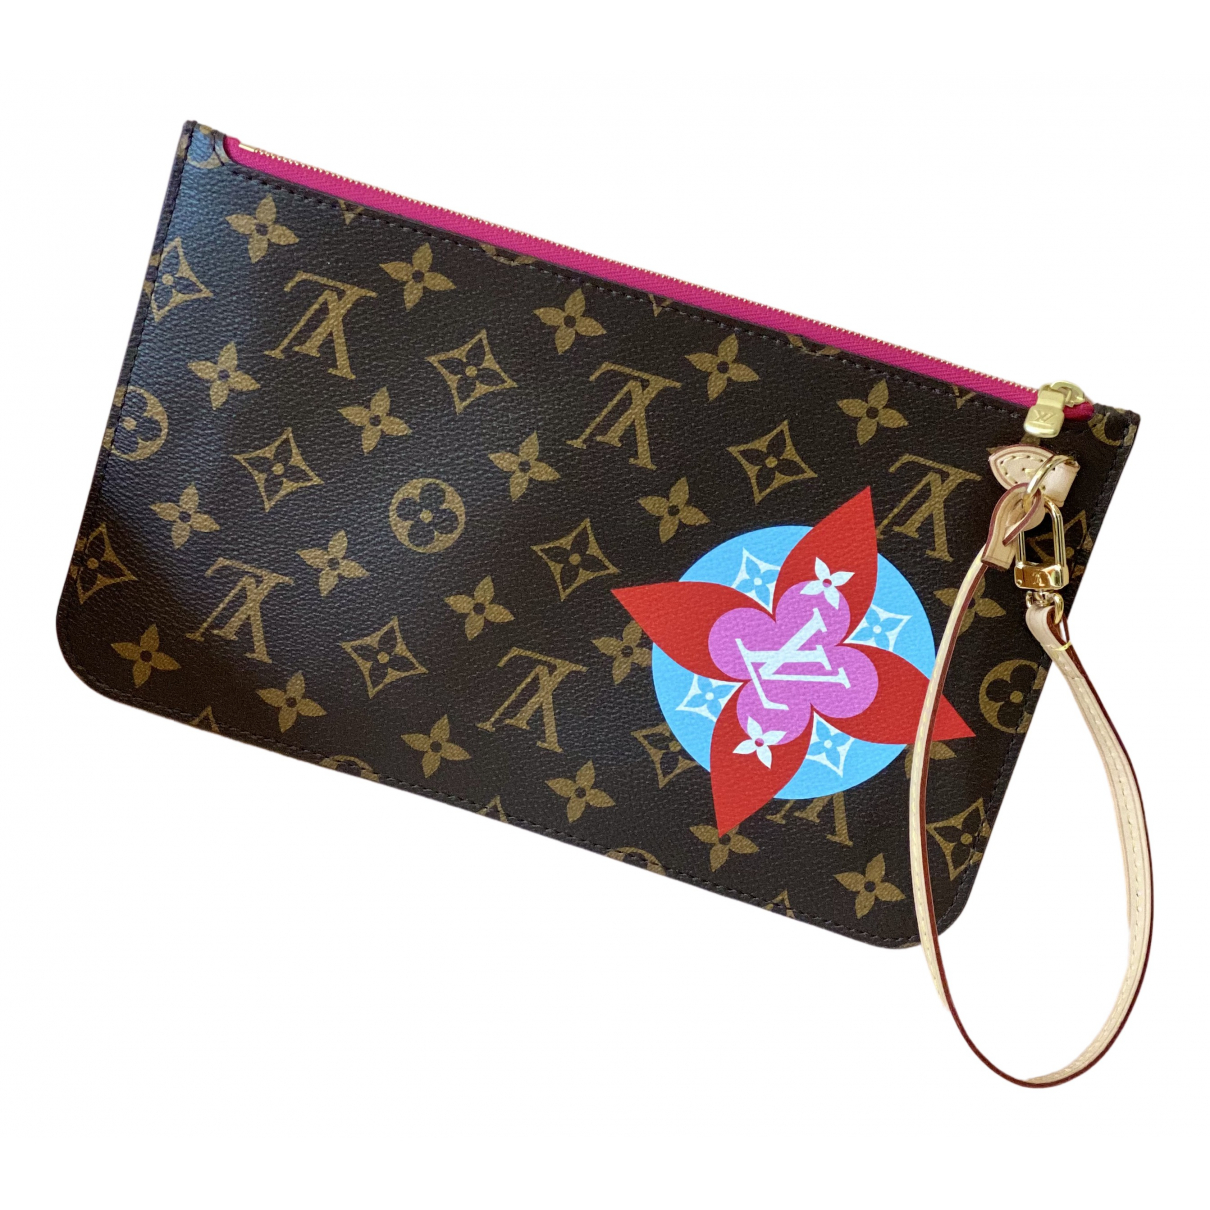 Pochette Neverfull de Lona Louis Vuitton